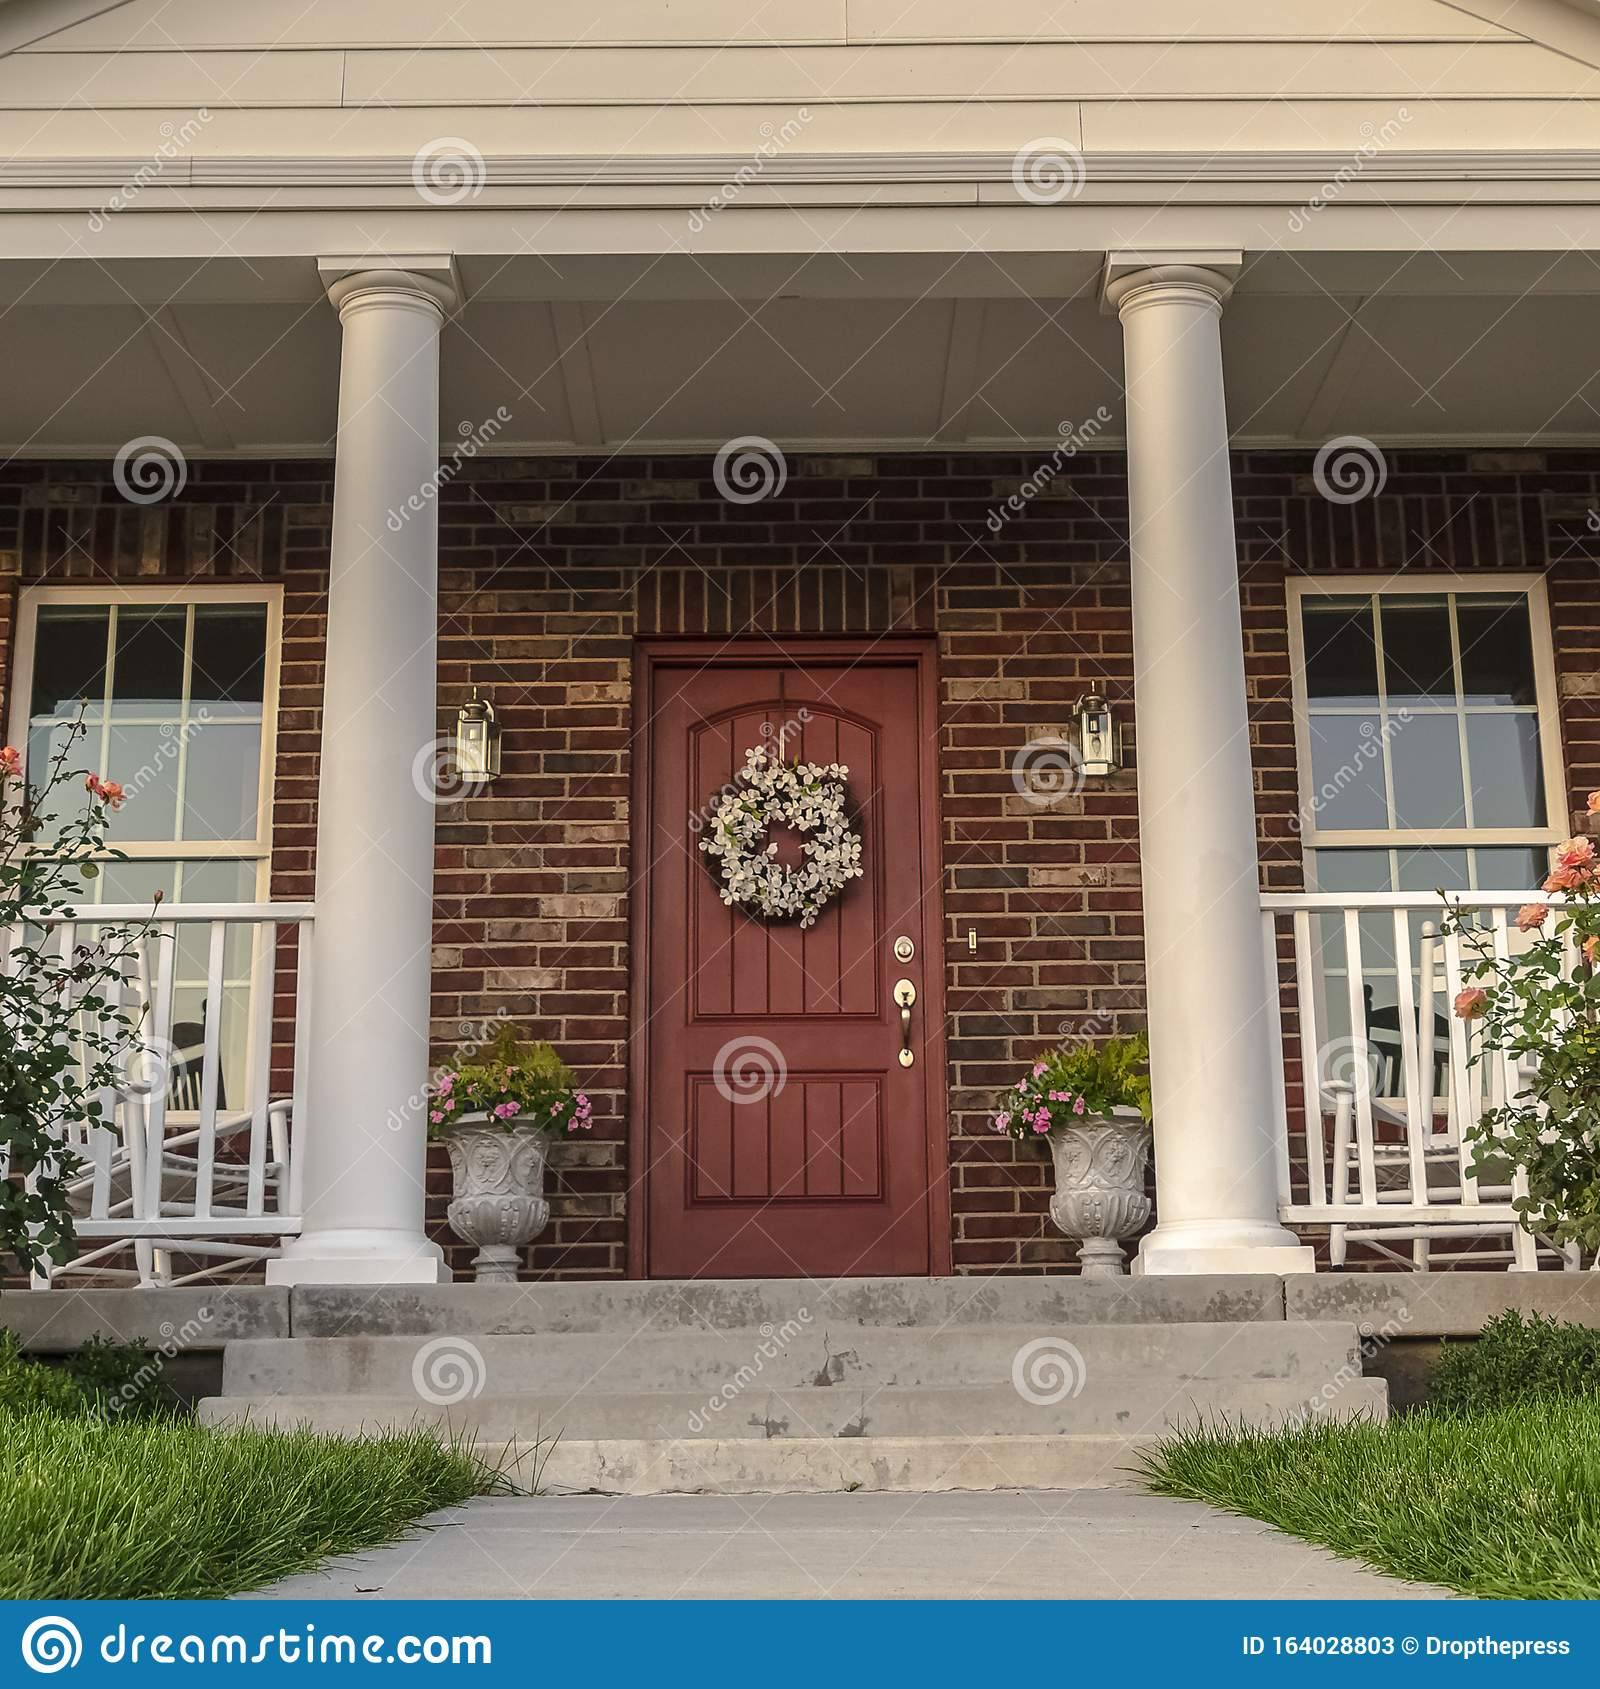 Square Front Facade Of A Modern House With Pillars Stock Image Image Of Suburbs Design 164028803